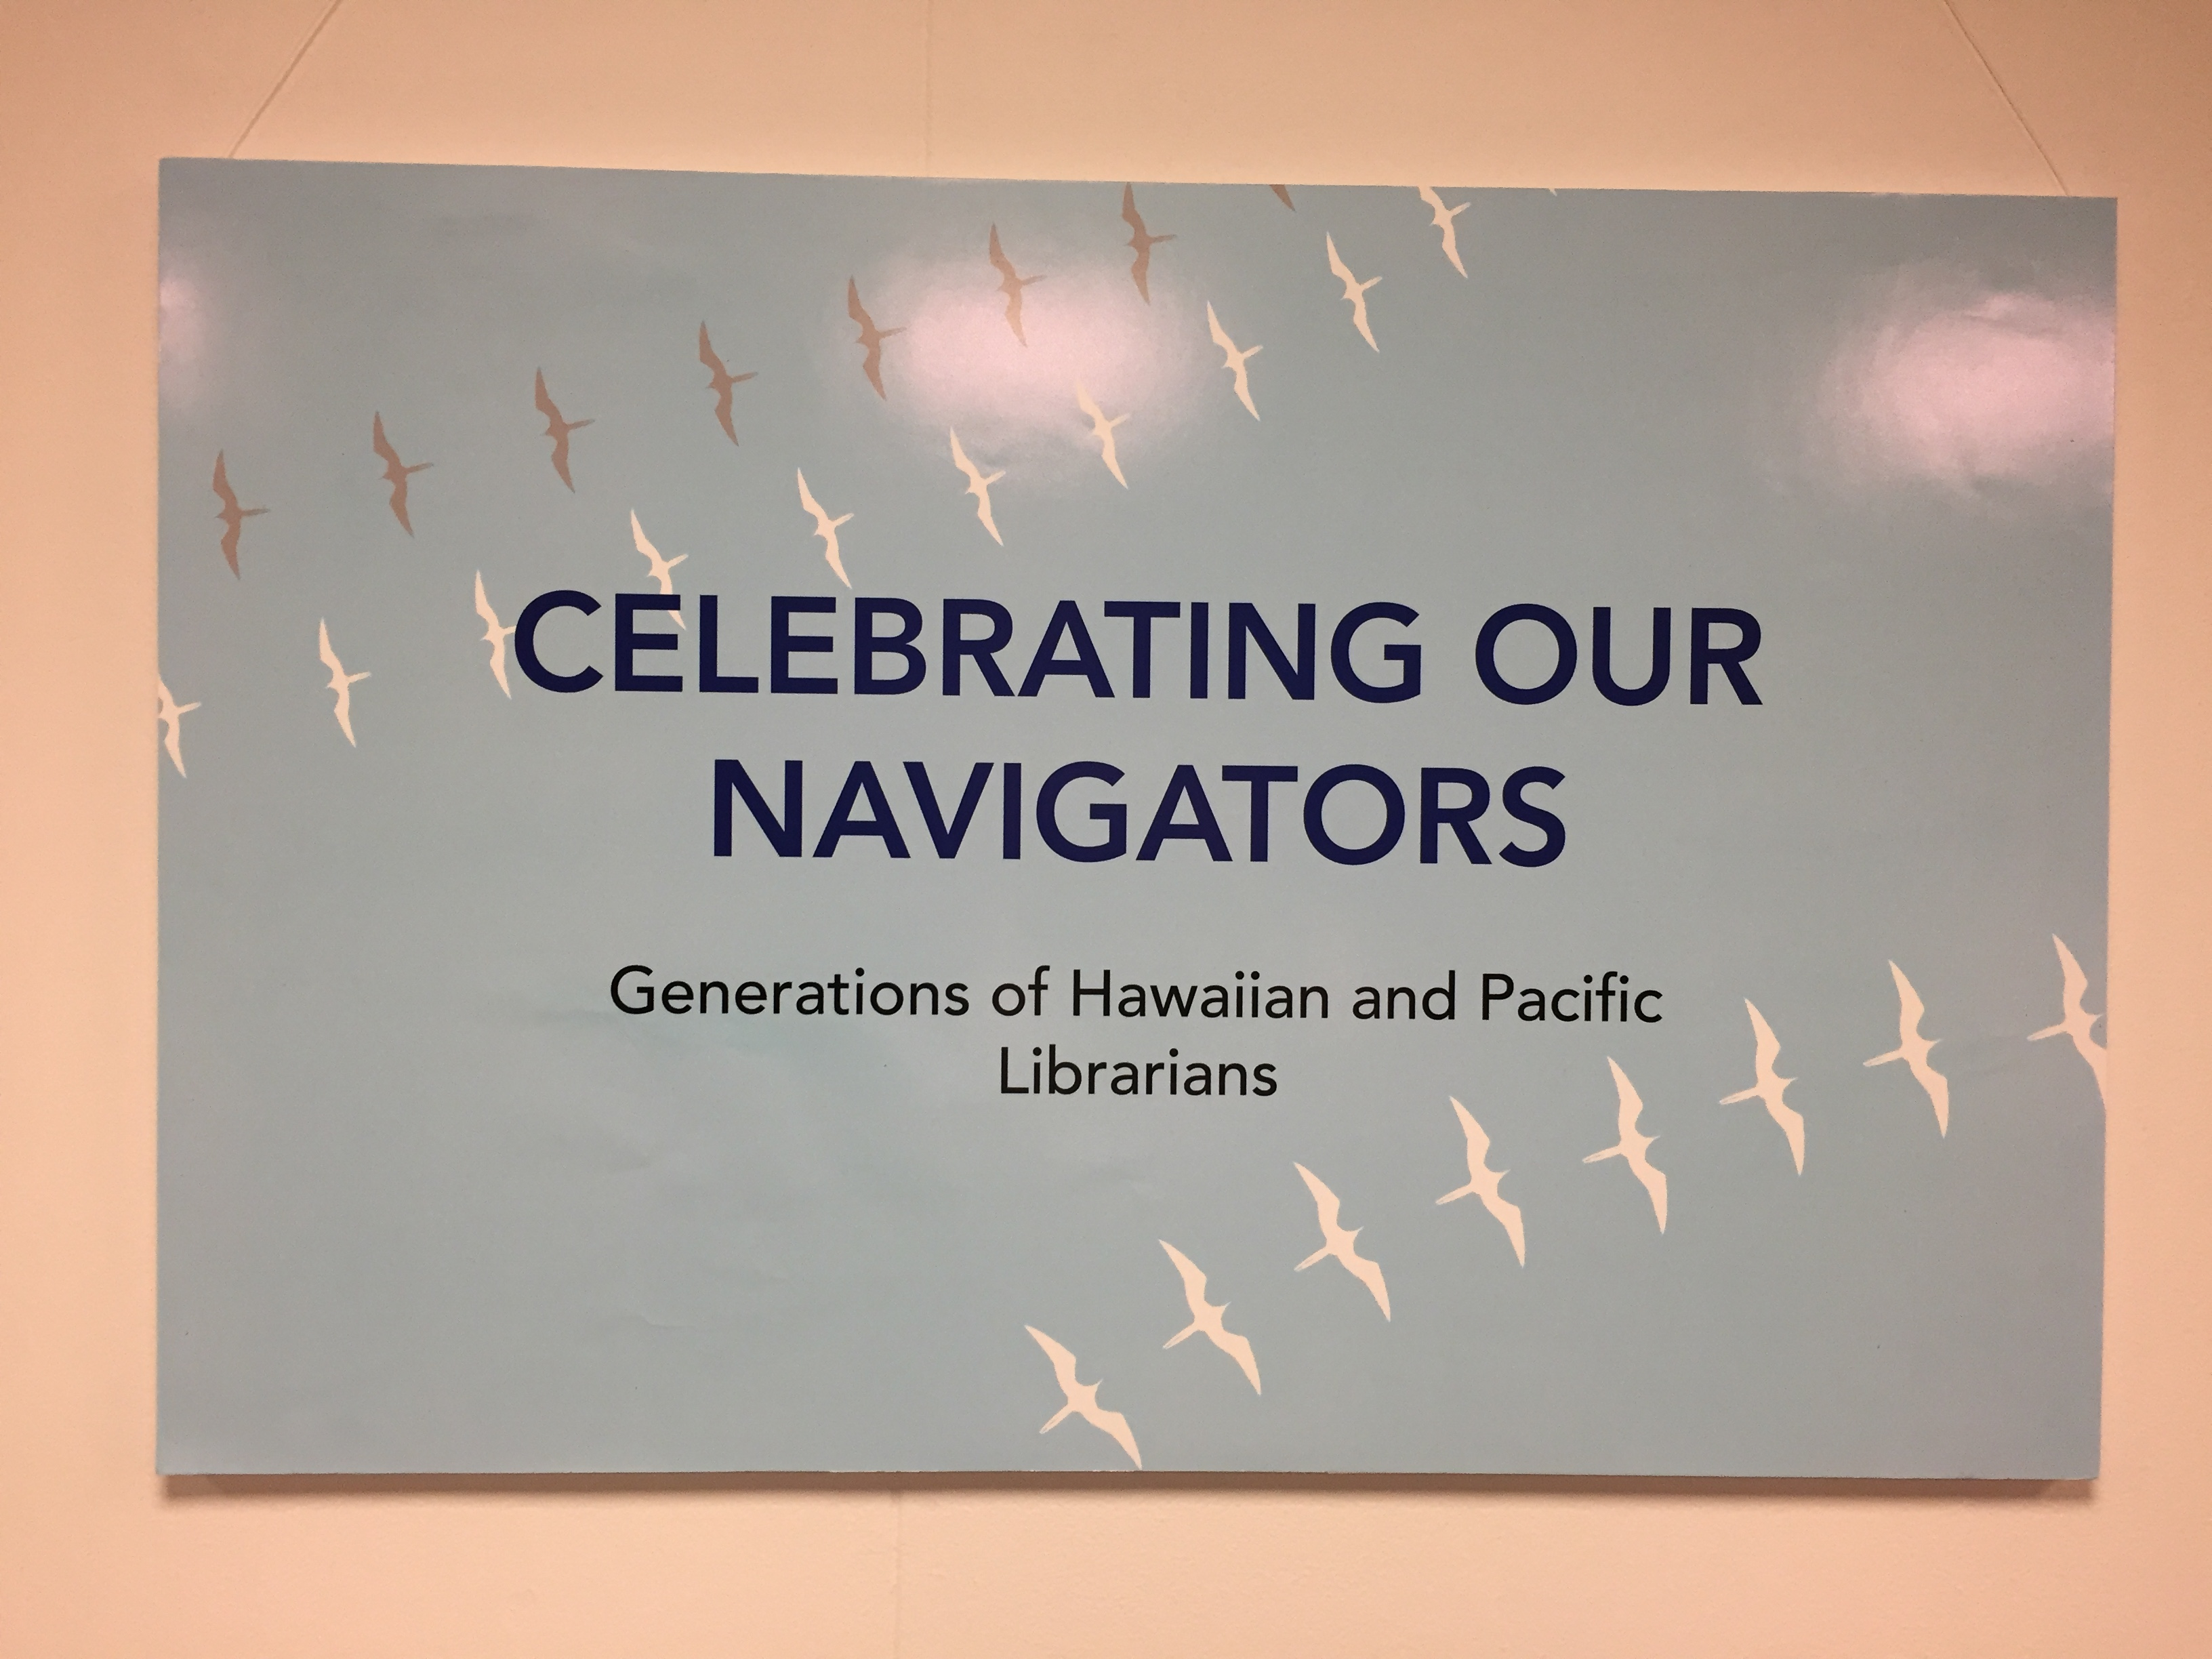 Celebrating our Navigators